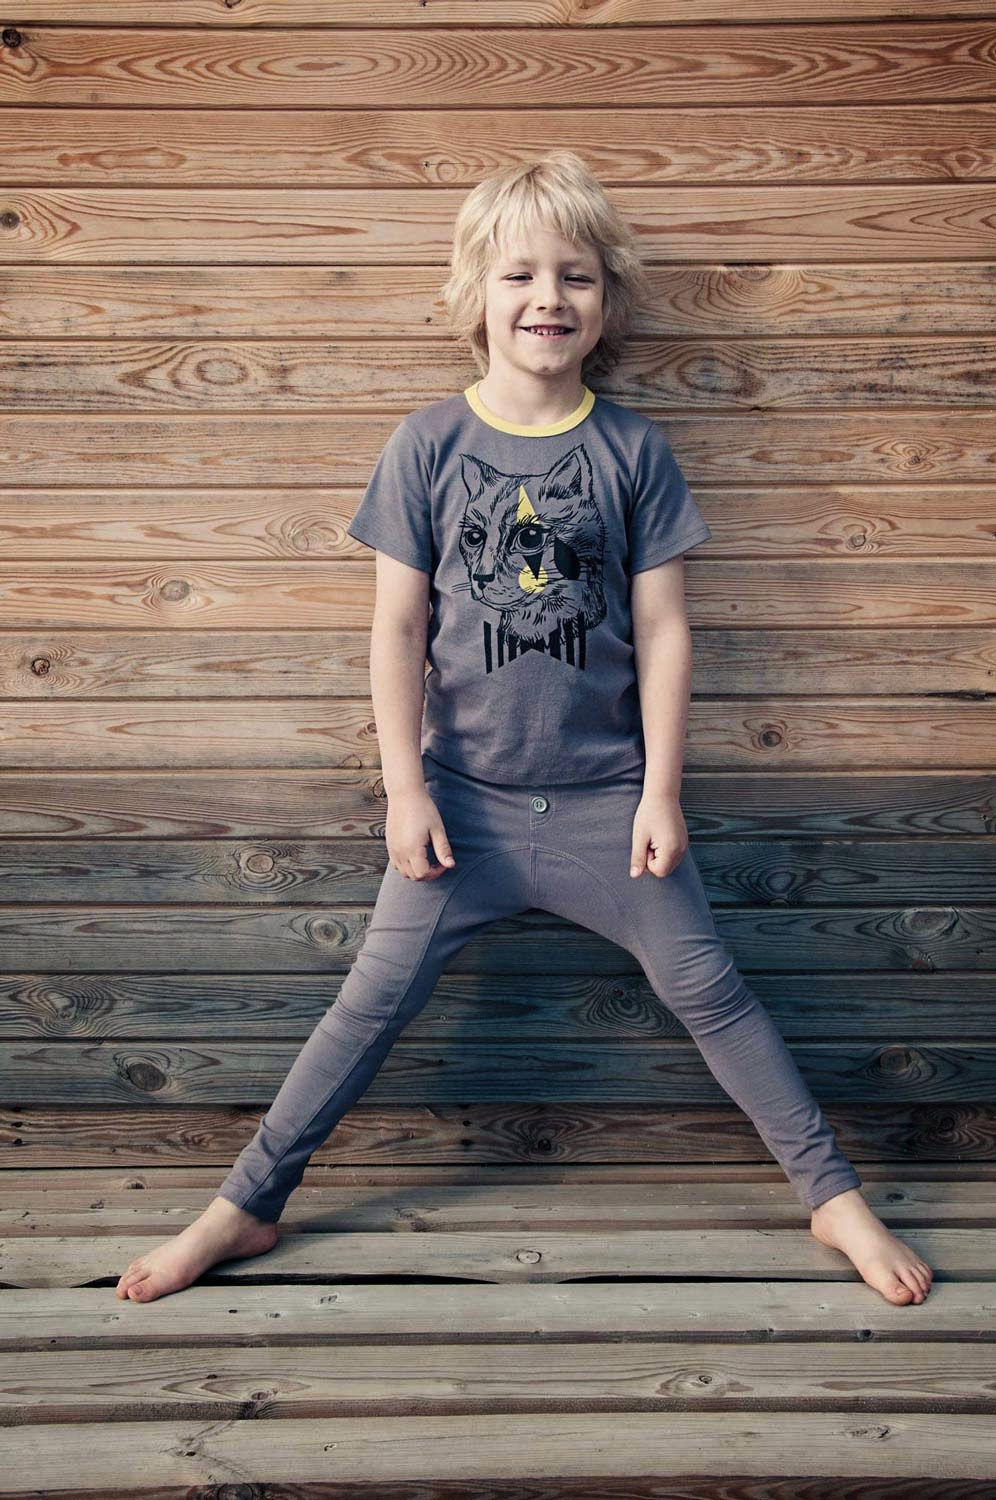 Boys tee with print by Hebe for spring 2014 children's clothes collection